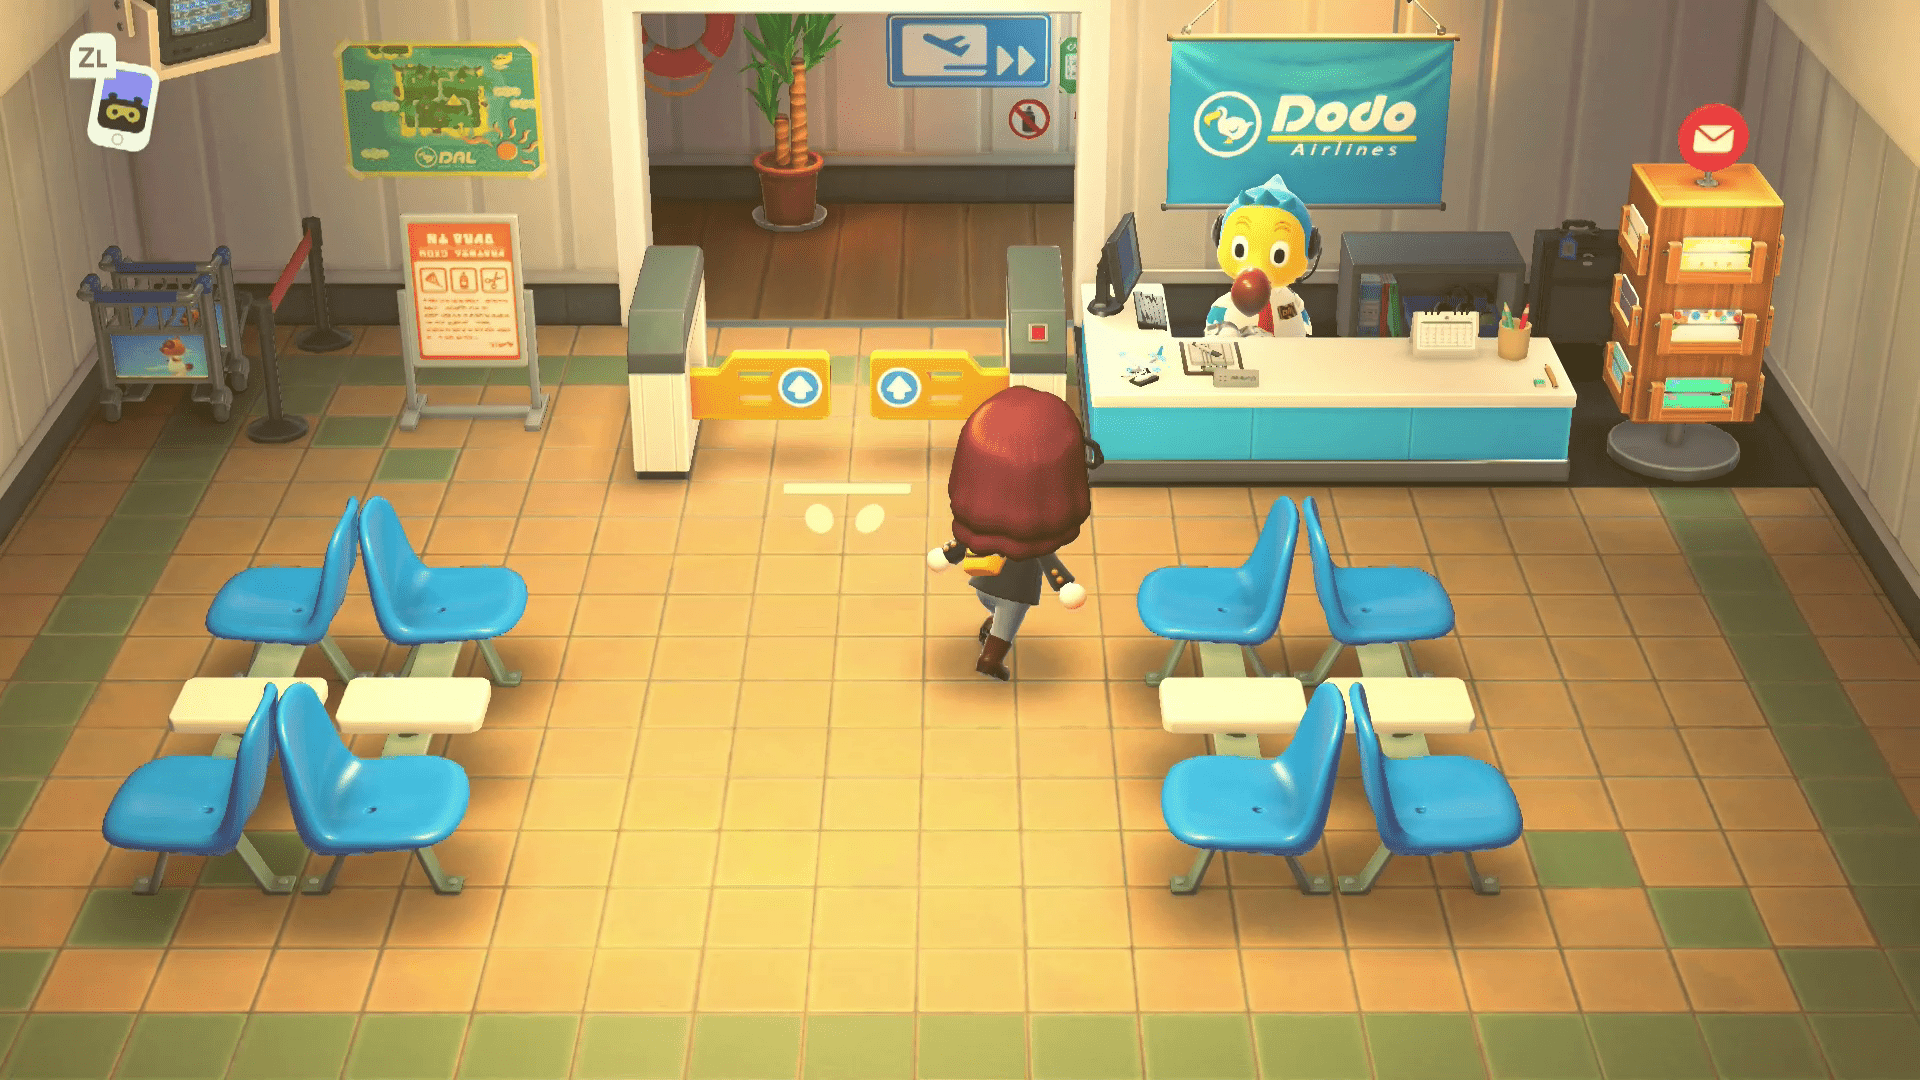 Orville at Dodo Airlines in Animal Crossing.